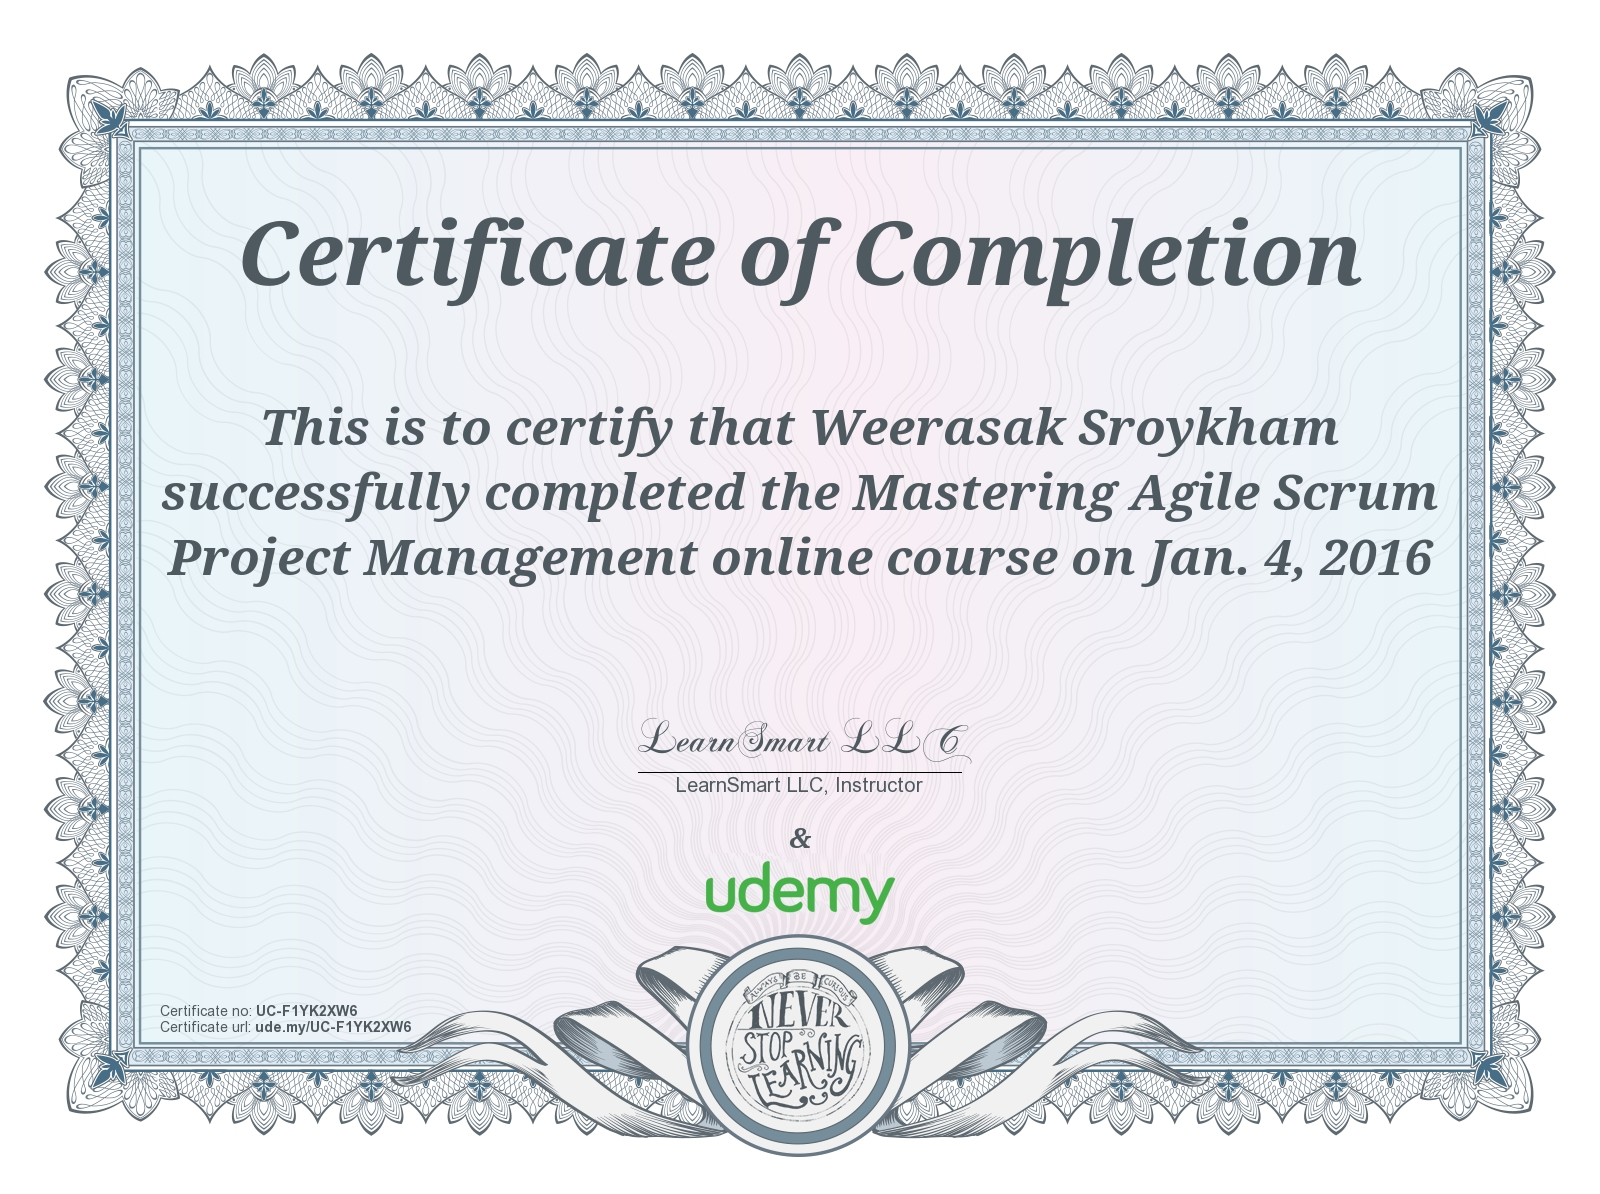 Weerasak sroykham online learning blog we learn we share we this certificate above verifies that weerasak sroykham successfully completed the course mastering agile scrum project management on jan xflitez Image collections